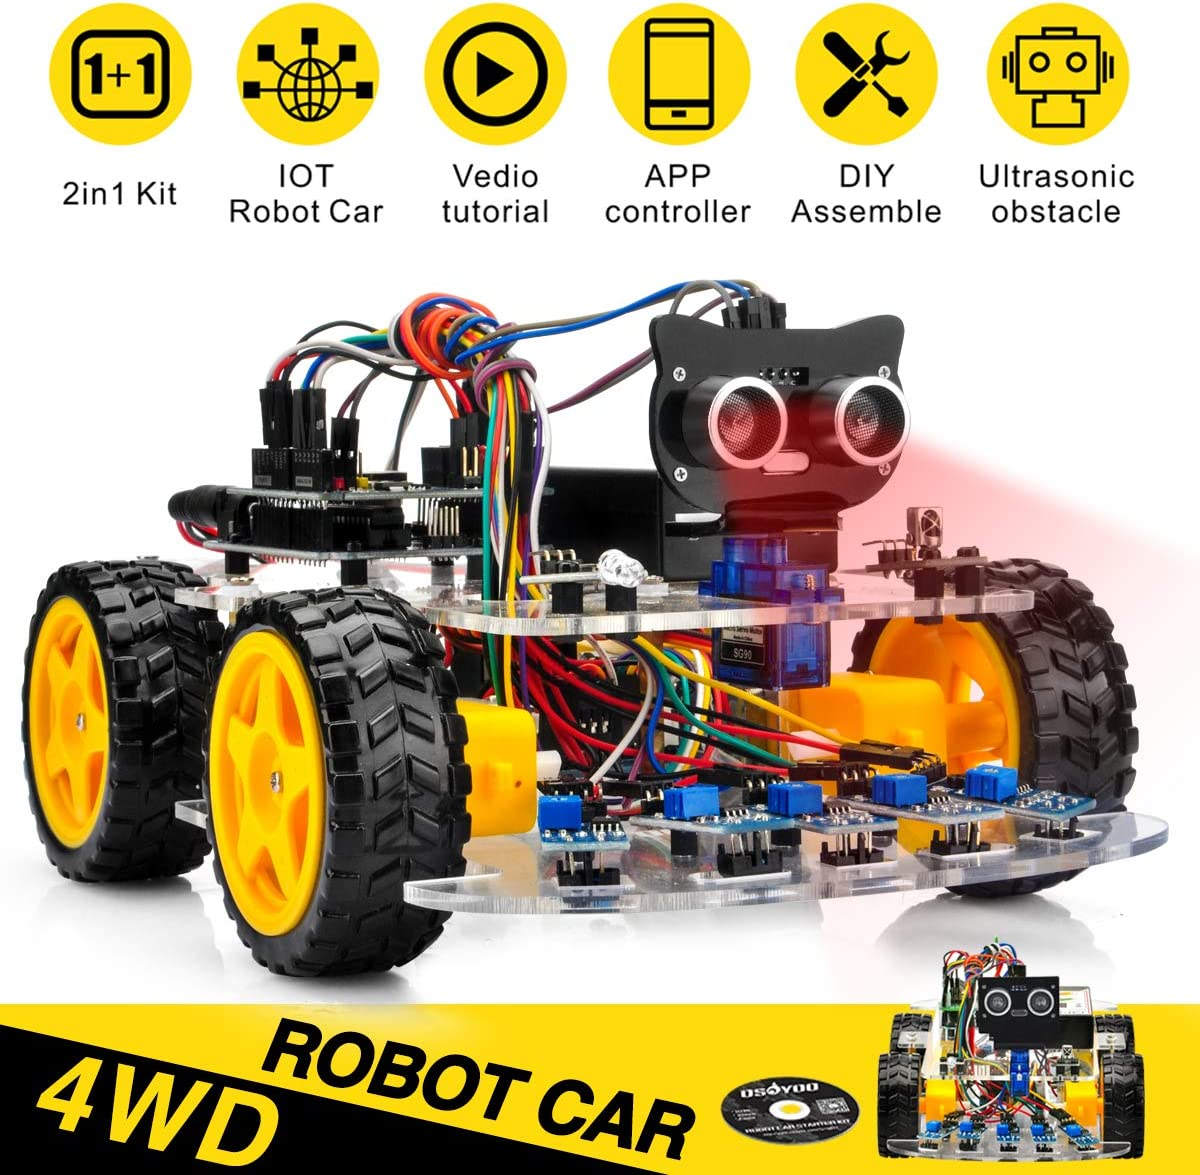 OSOYOO Robot Car Starter Kit for Arduino UNO | STEM Remote Control App Educational Motorized Robotics for Building, Programming & Learning How to Code | IOT Mechanical DIY Coding for Kids Teens